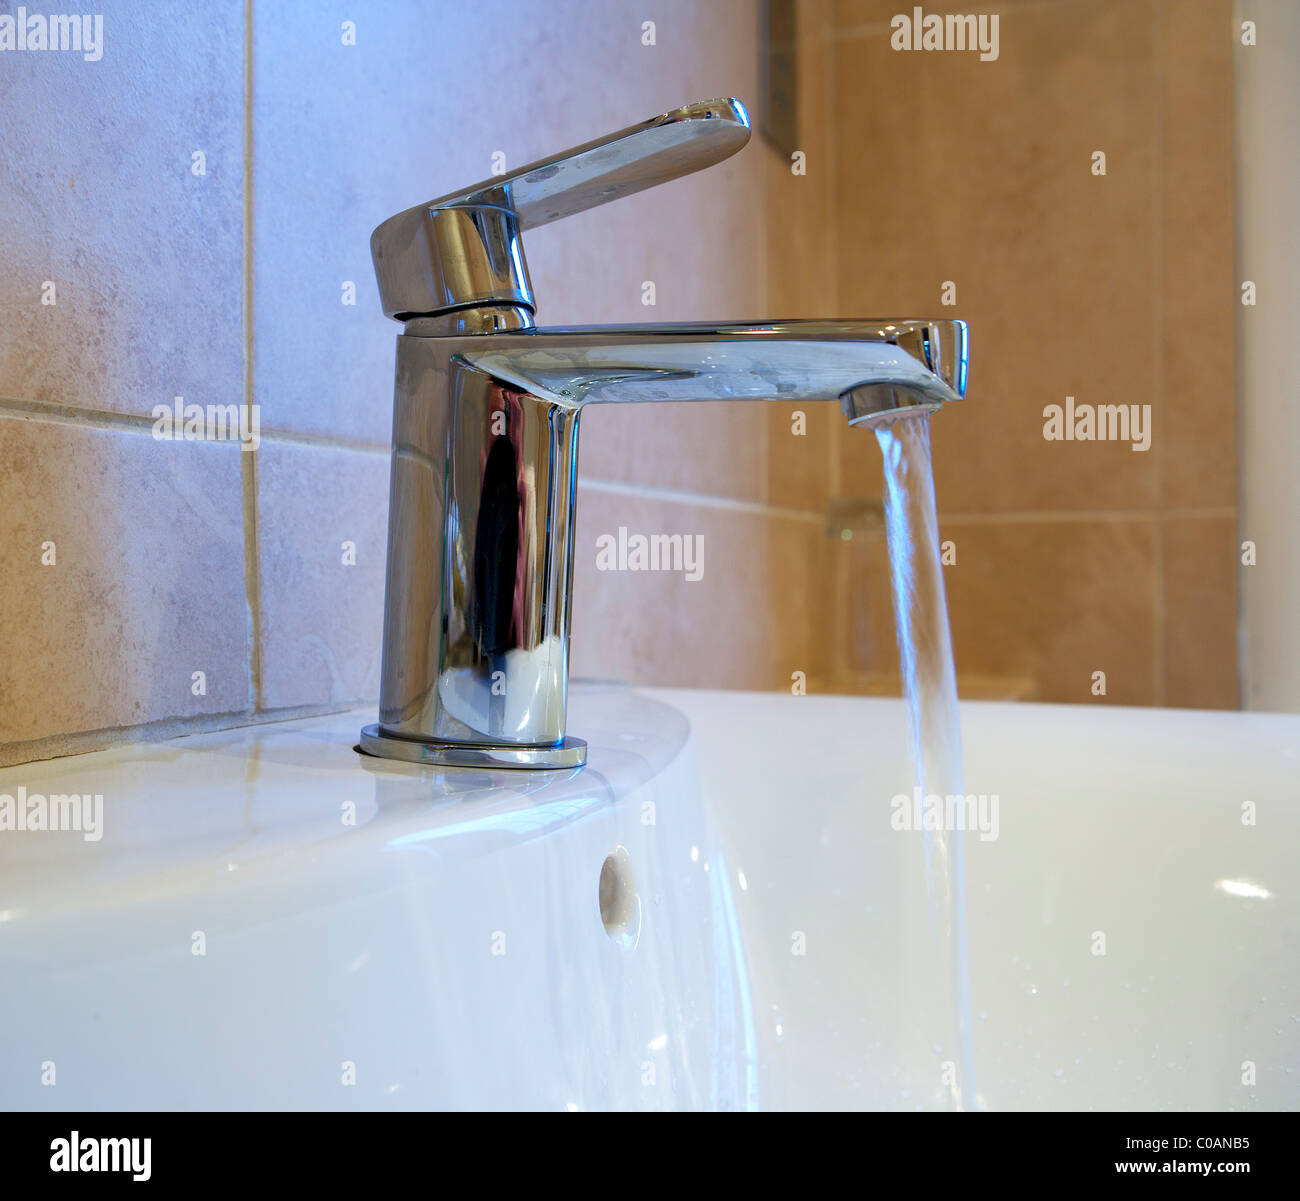 Mixer Tap with running water - Stock Image